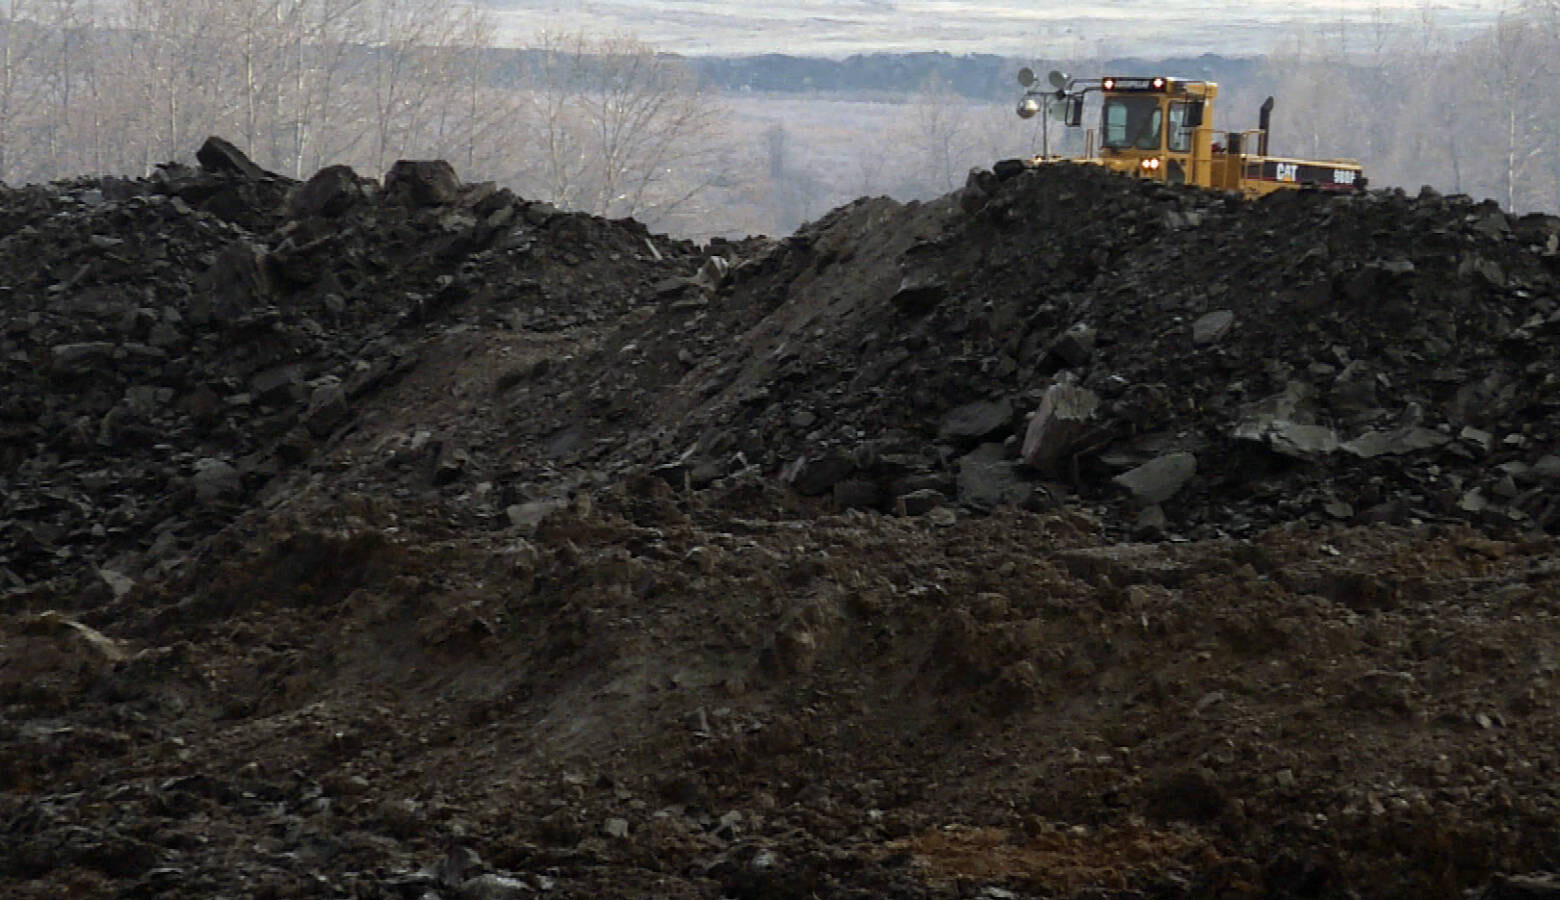 The U.S. Energy Information Administration shows overall coal production in the U.S. last year was the lowest it's been since 1965. (FILE PHOTO: Barbara Brosher/WTIU)